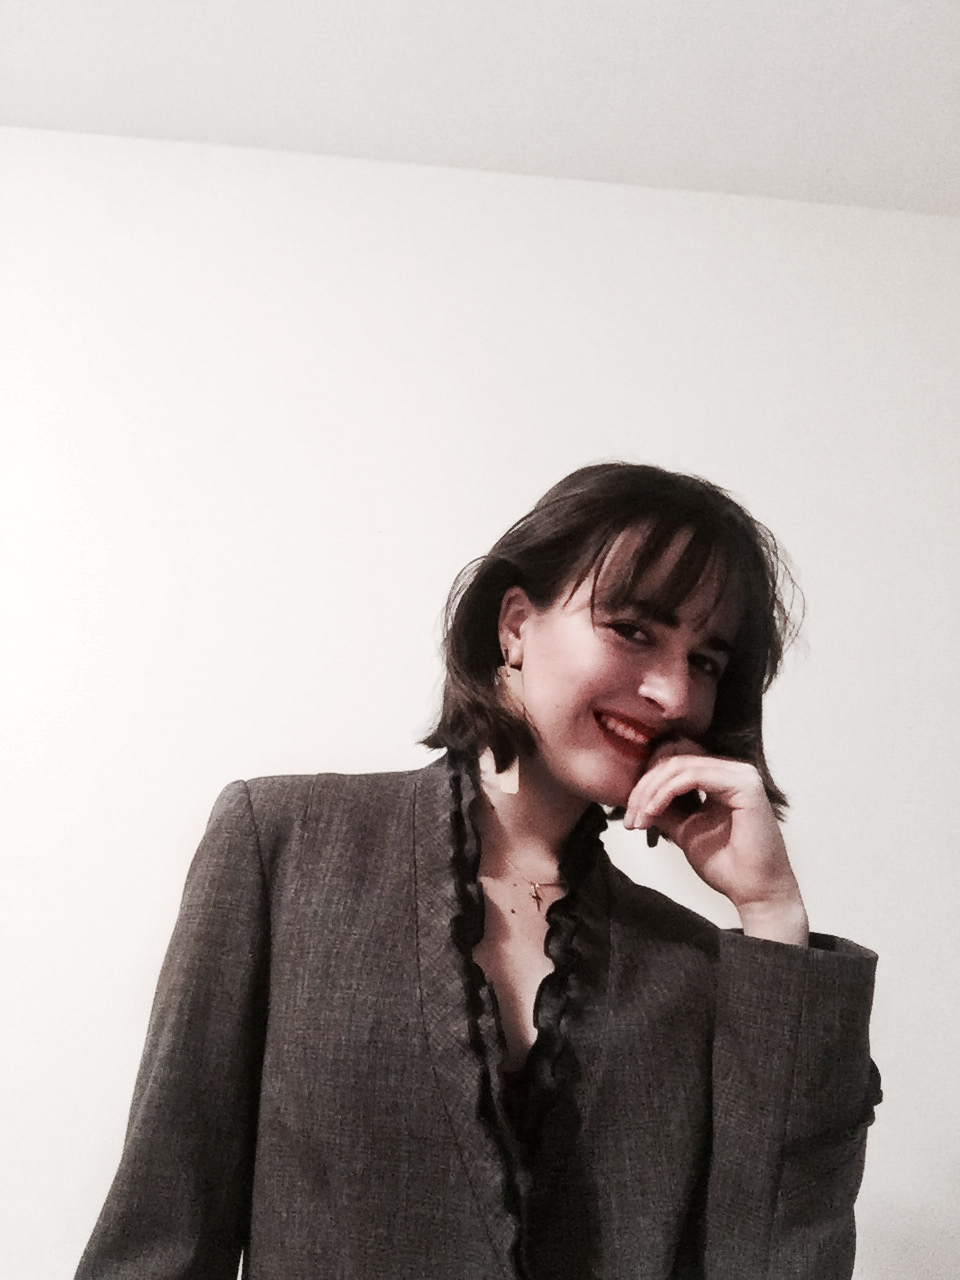 Earrings: COS  Suit: Thrifted  Bra:  The Pantry Underwear   Lips:  Rouje